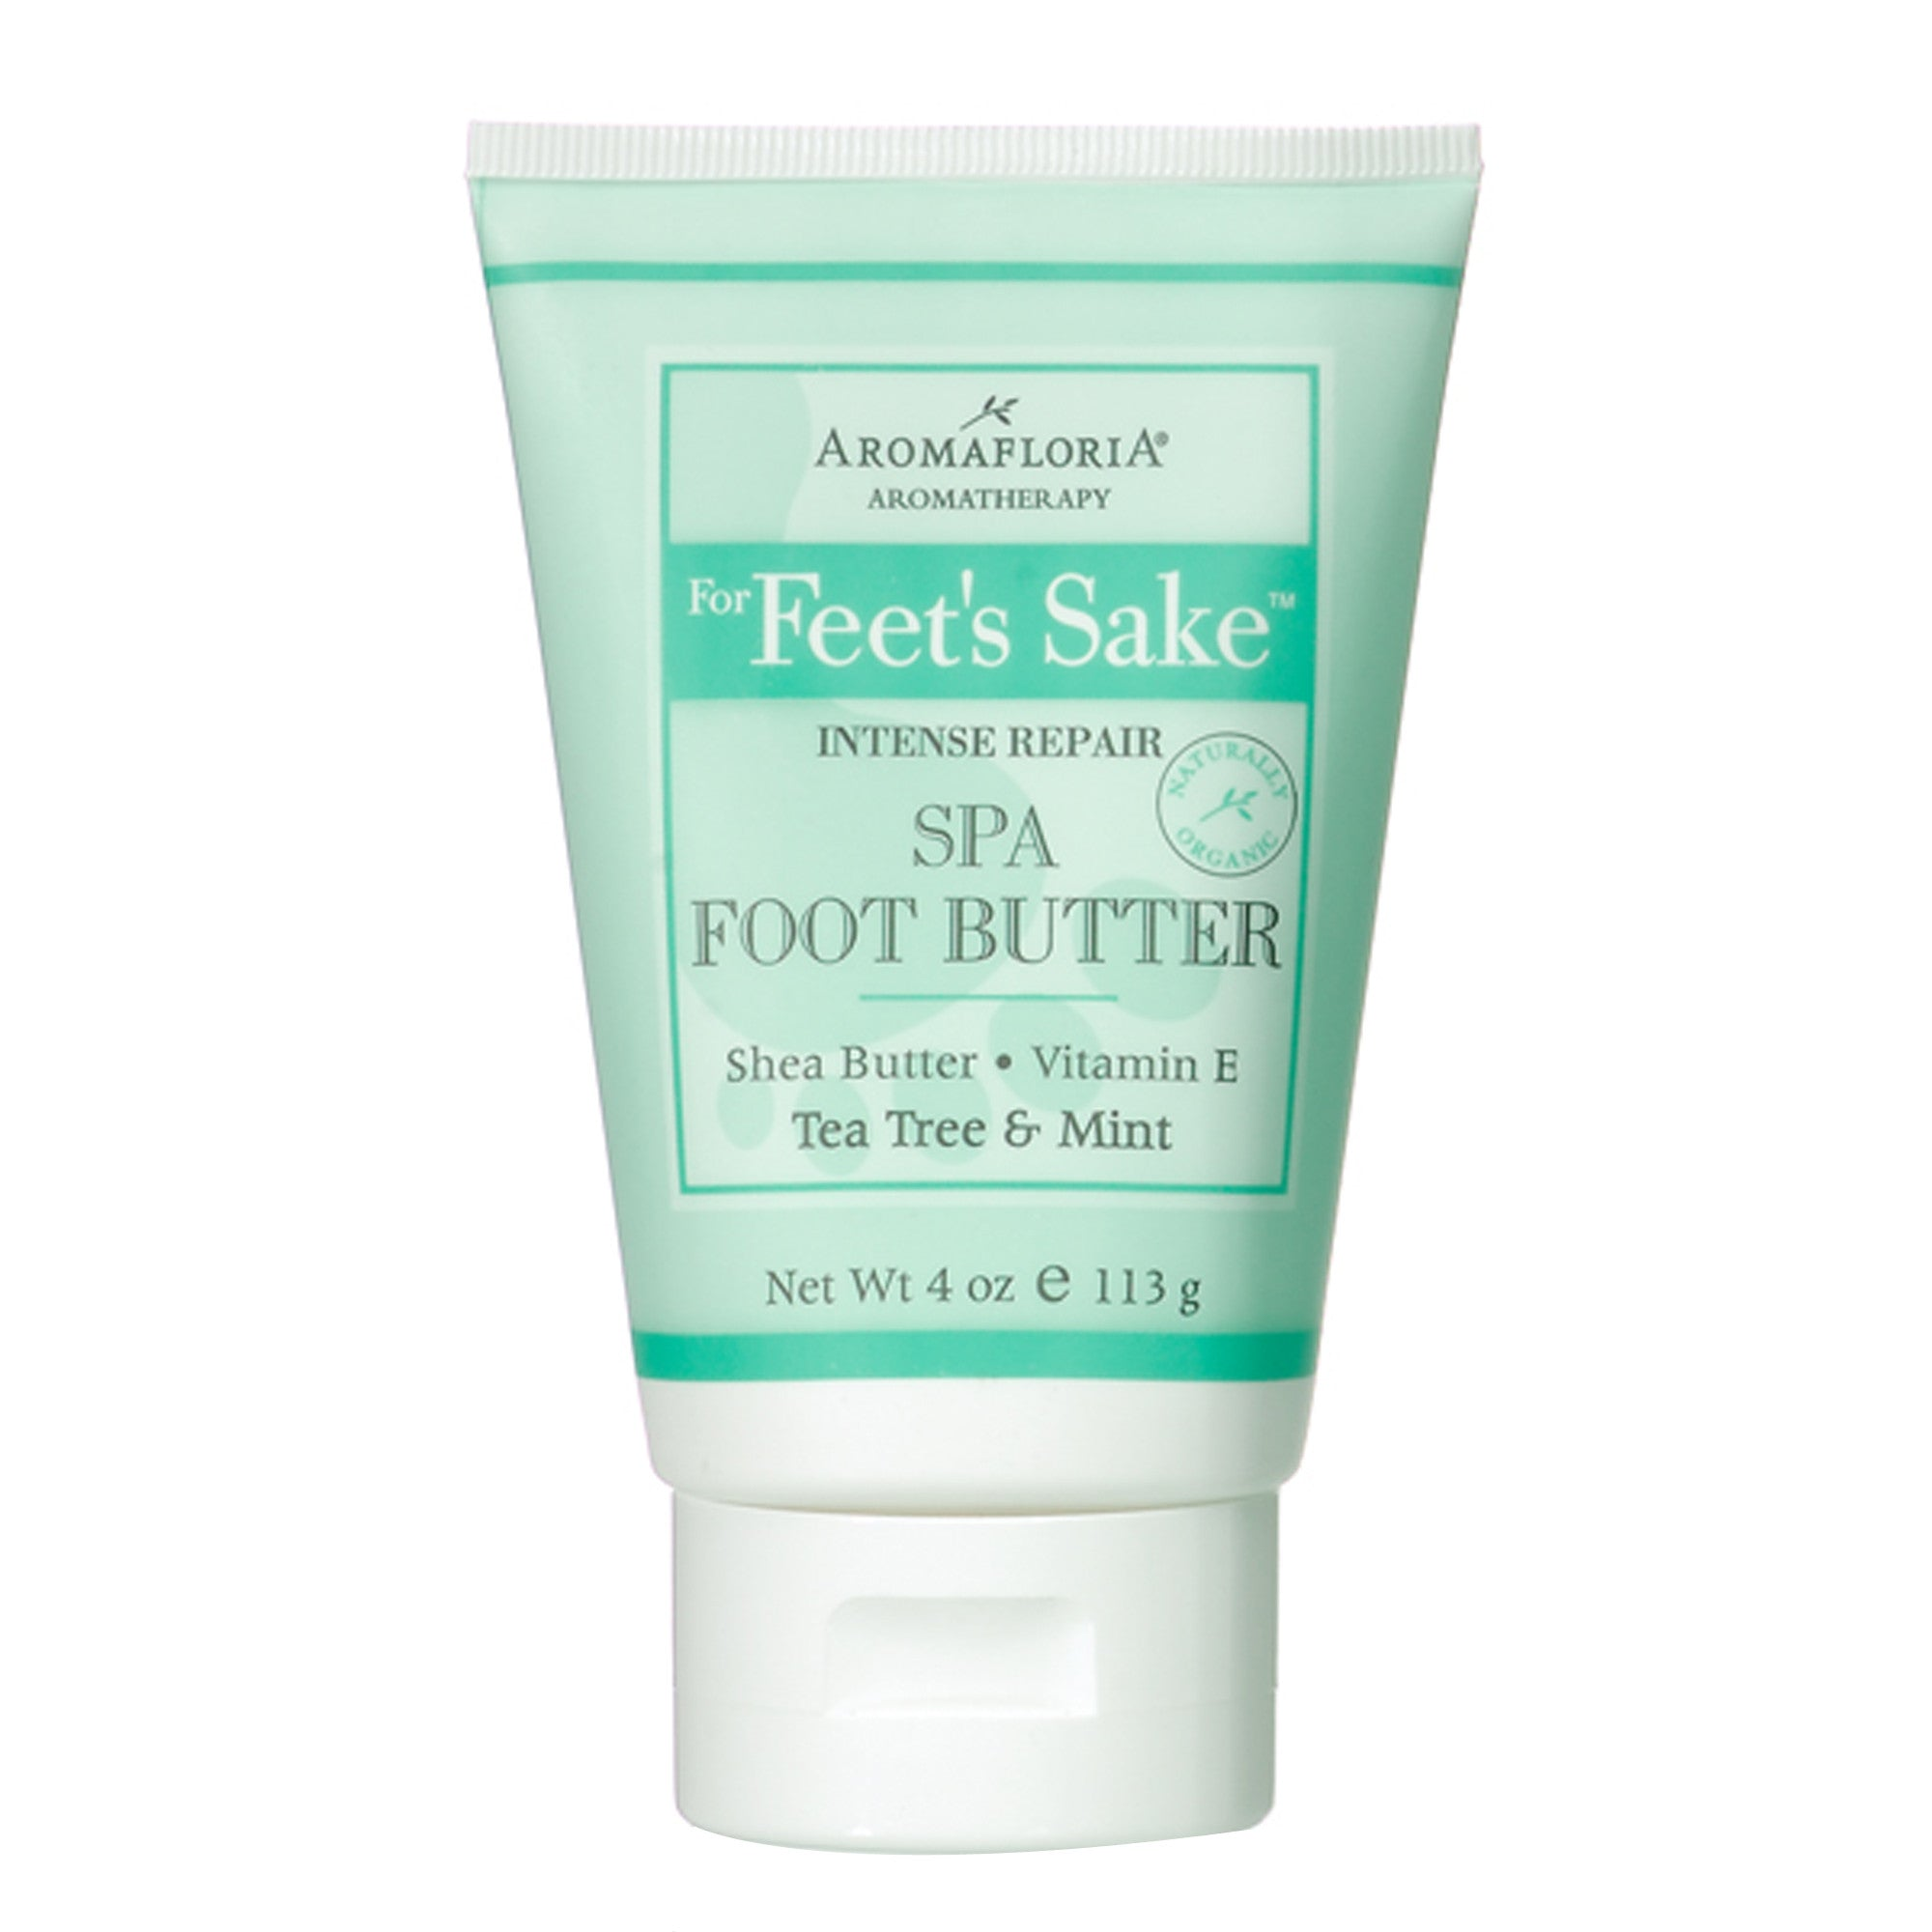 Intense Repair Spa Foot Butter